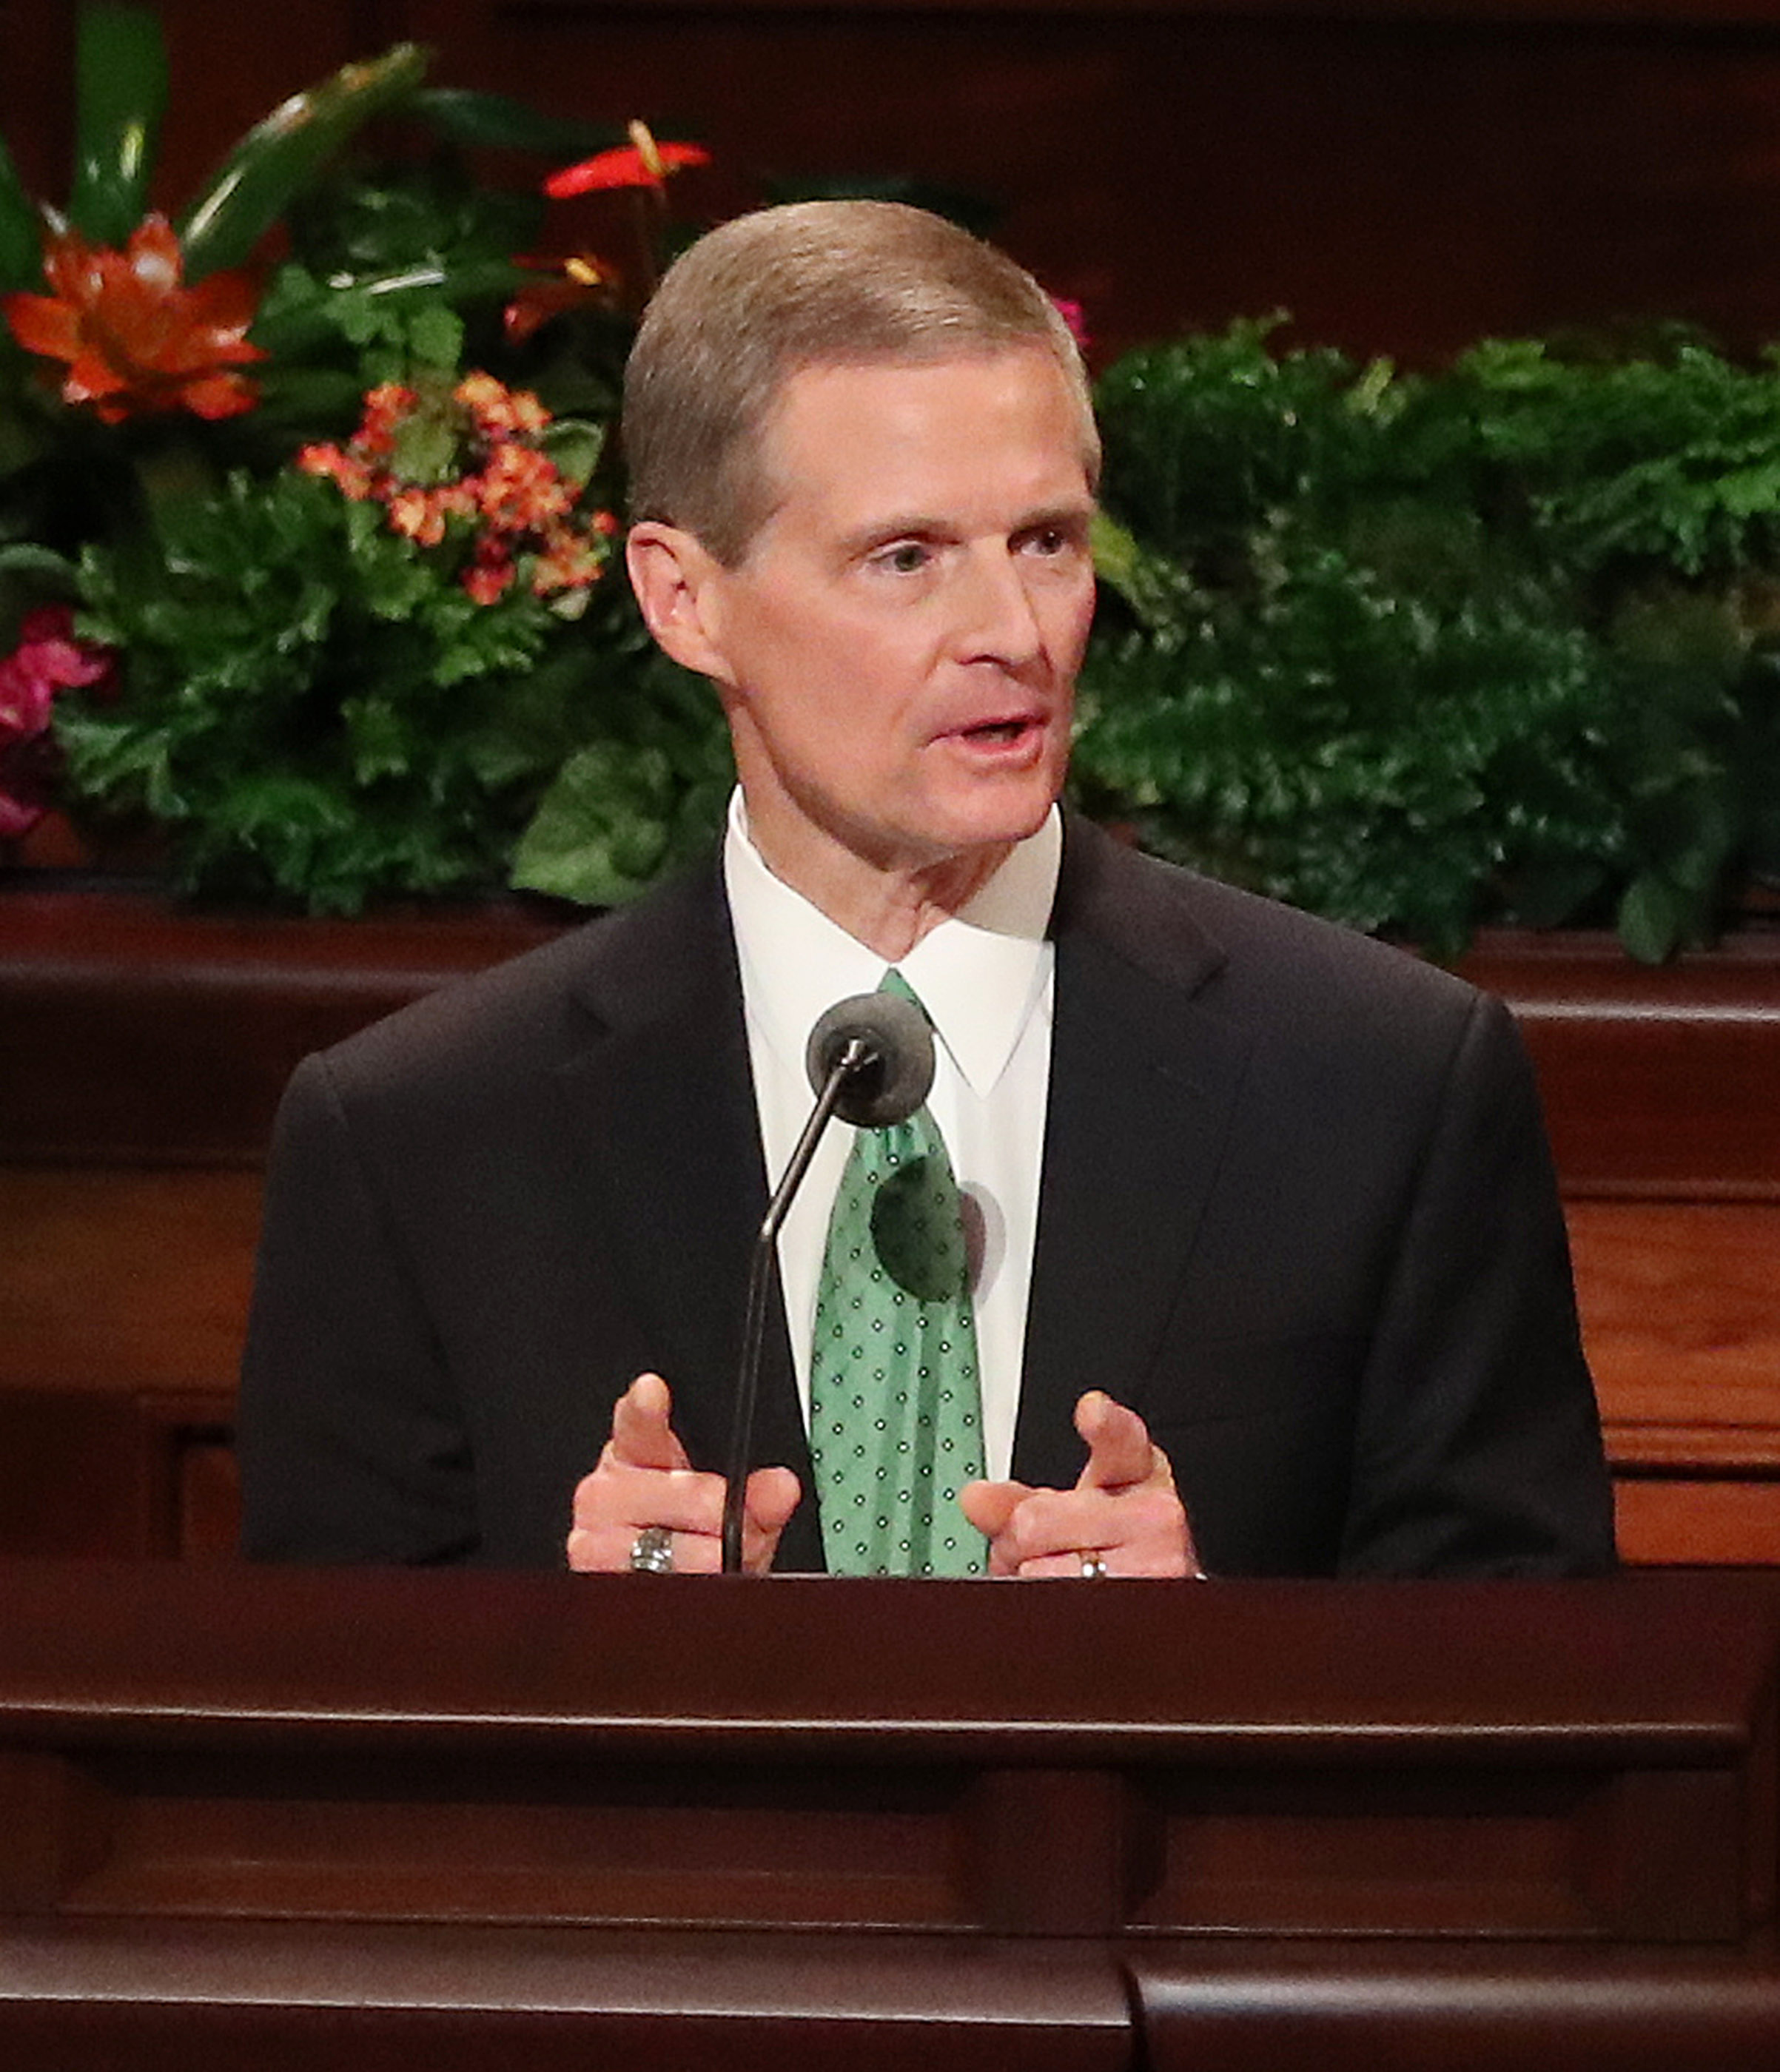 Elder David A, Bednar of the Quorum of the Twelve Apostles speaks during the Saturday morning session of the 188th Semiannual General Conference of The Church of Jesus Christ of Latter-day Saints in the Conference Center in Salt Lake City on Saturday, Oct. 6, 2018.